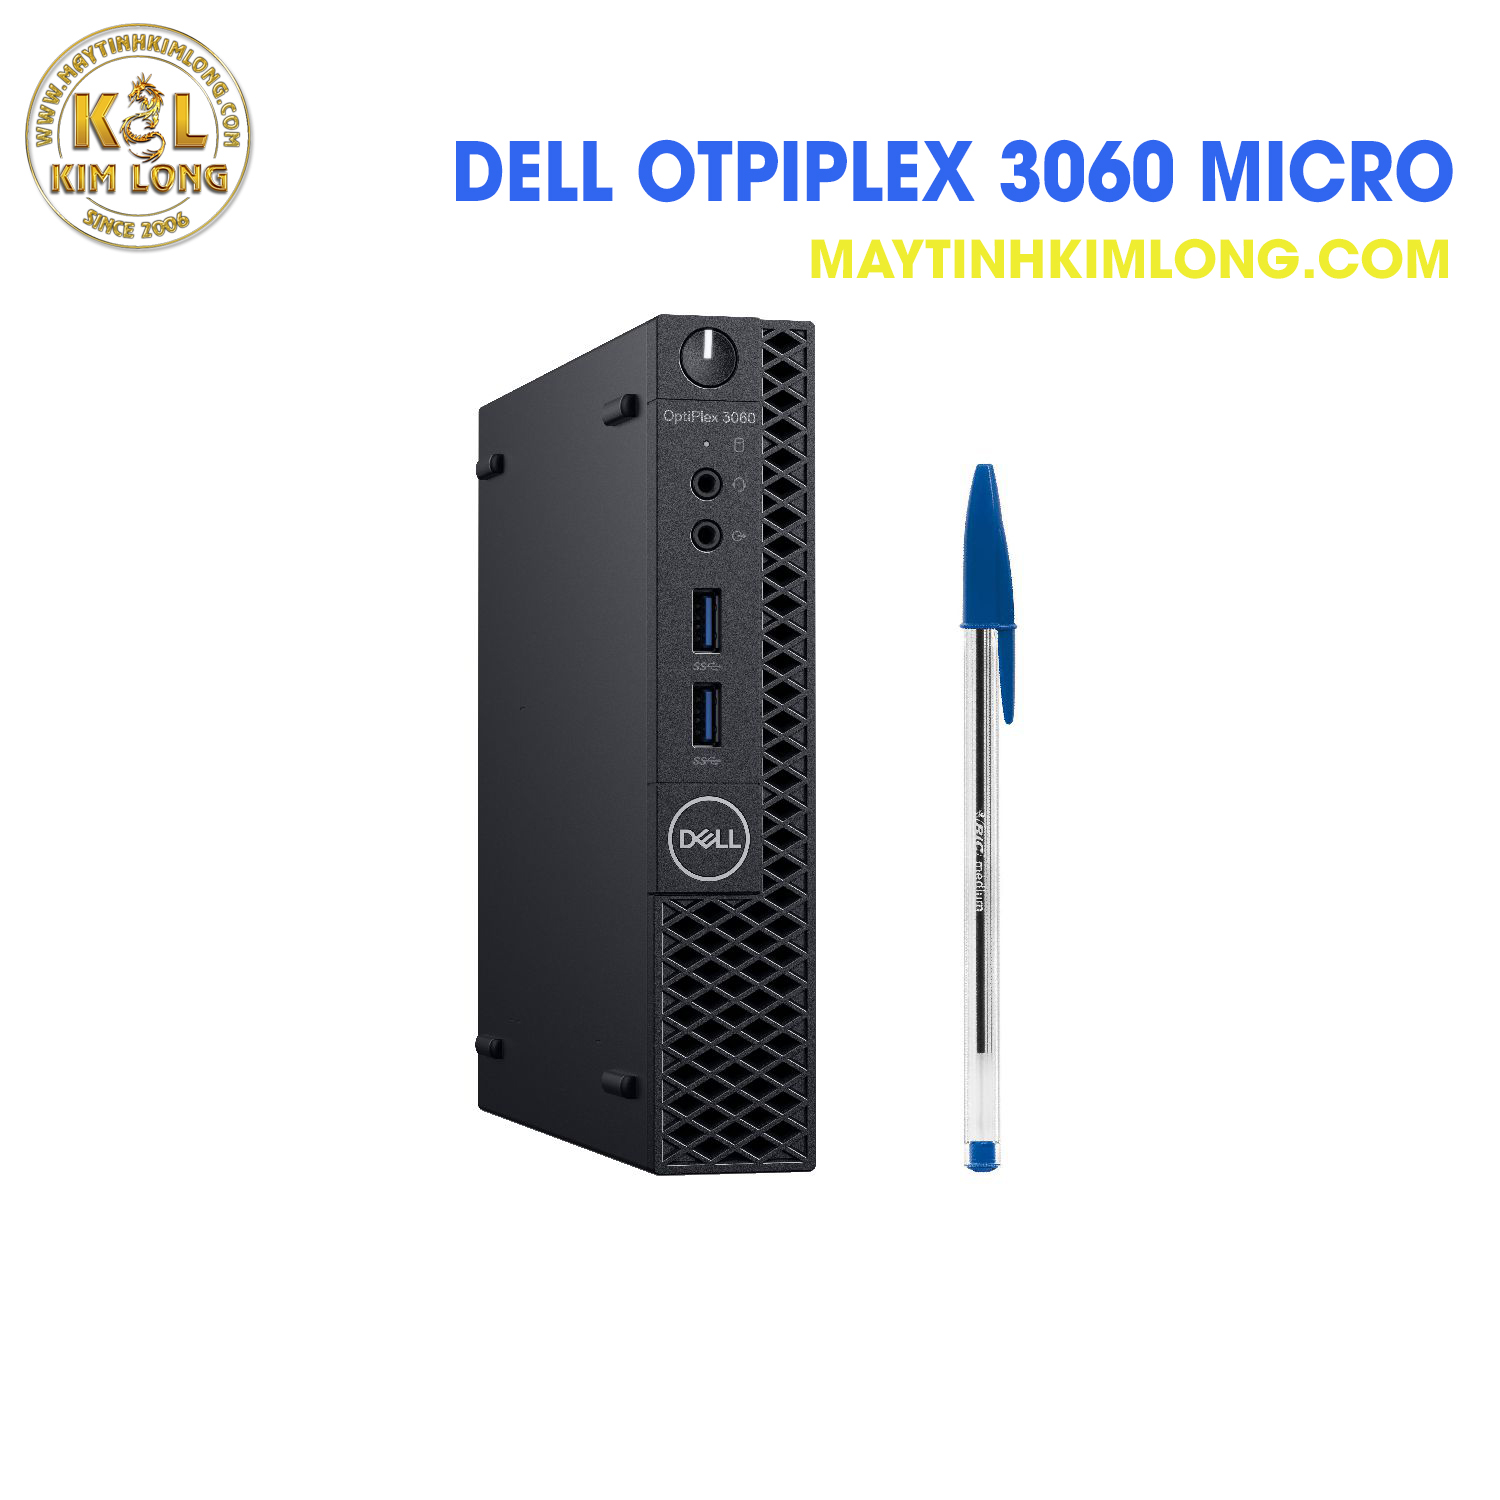 Máy bộ Dell OptiPlex 3060 Micro  i3 8100T/DDR4 4GB/HDD 500 GB